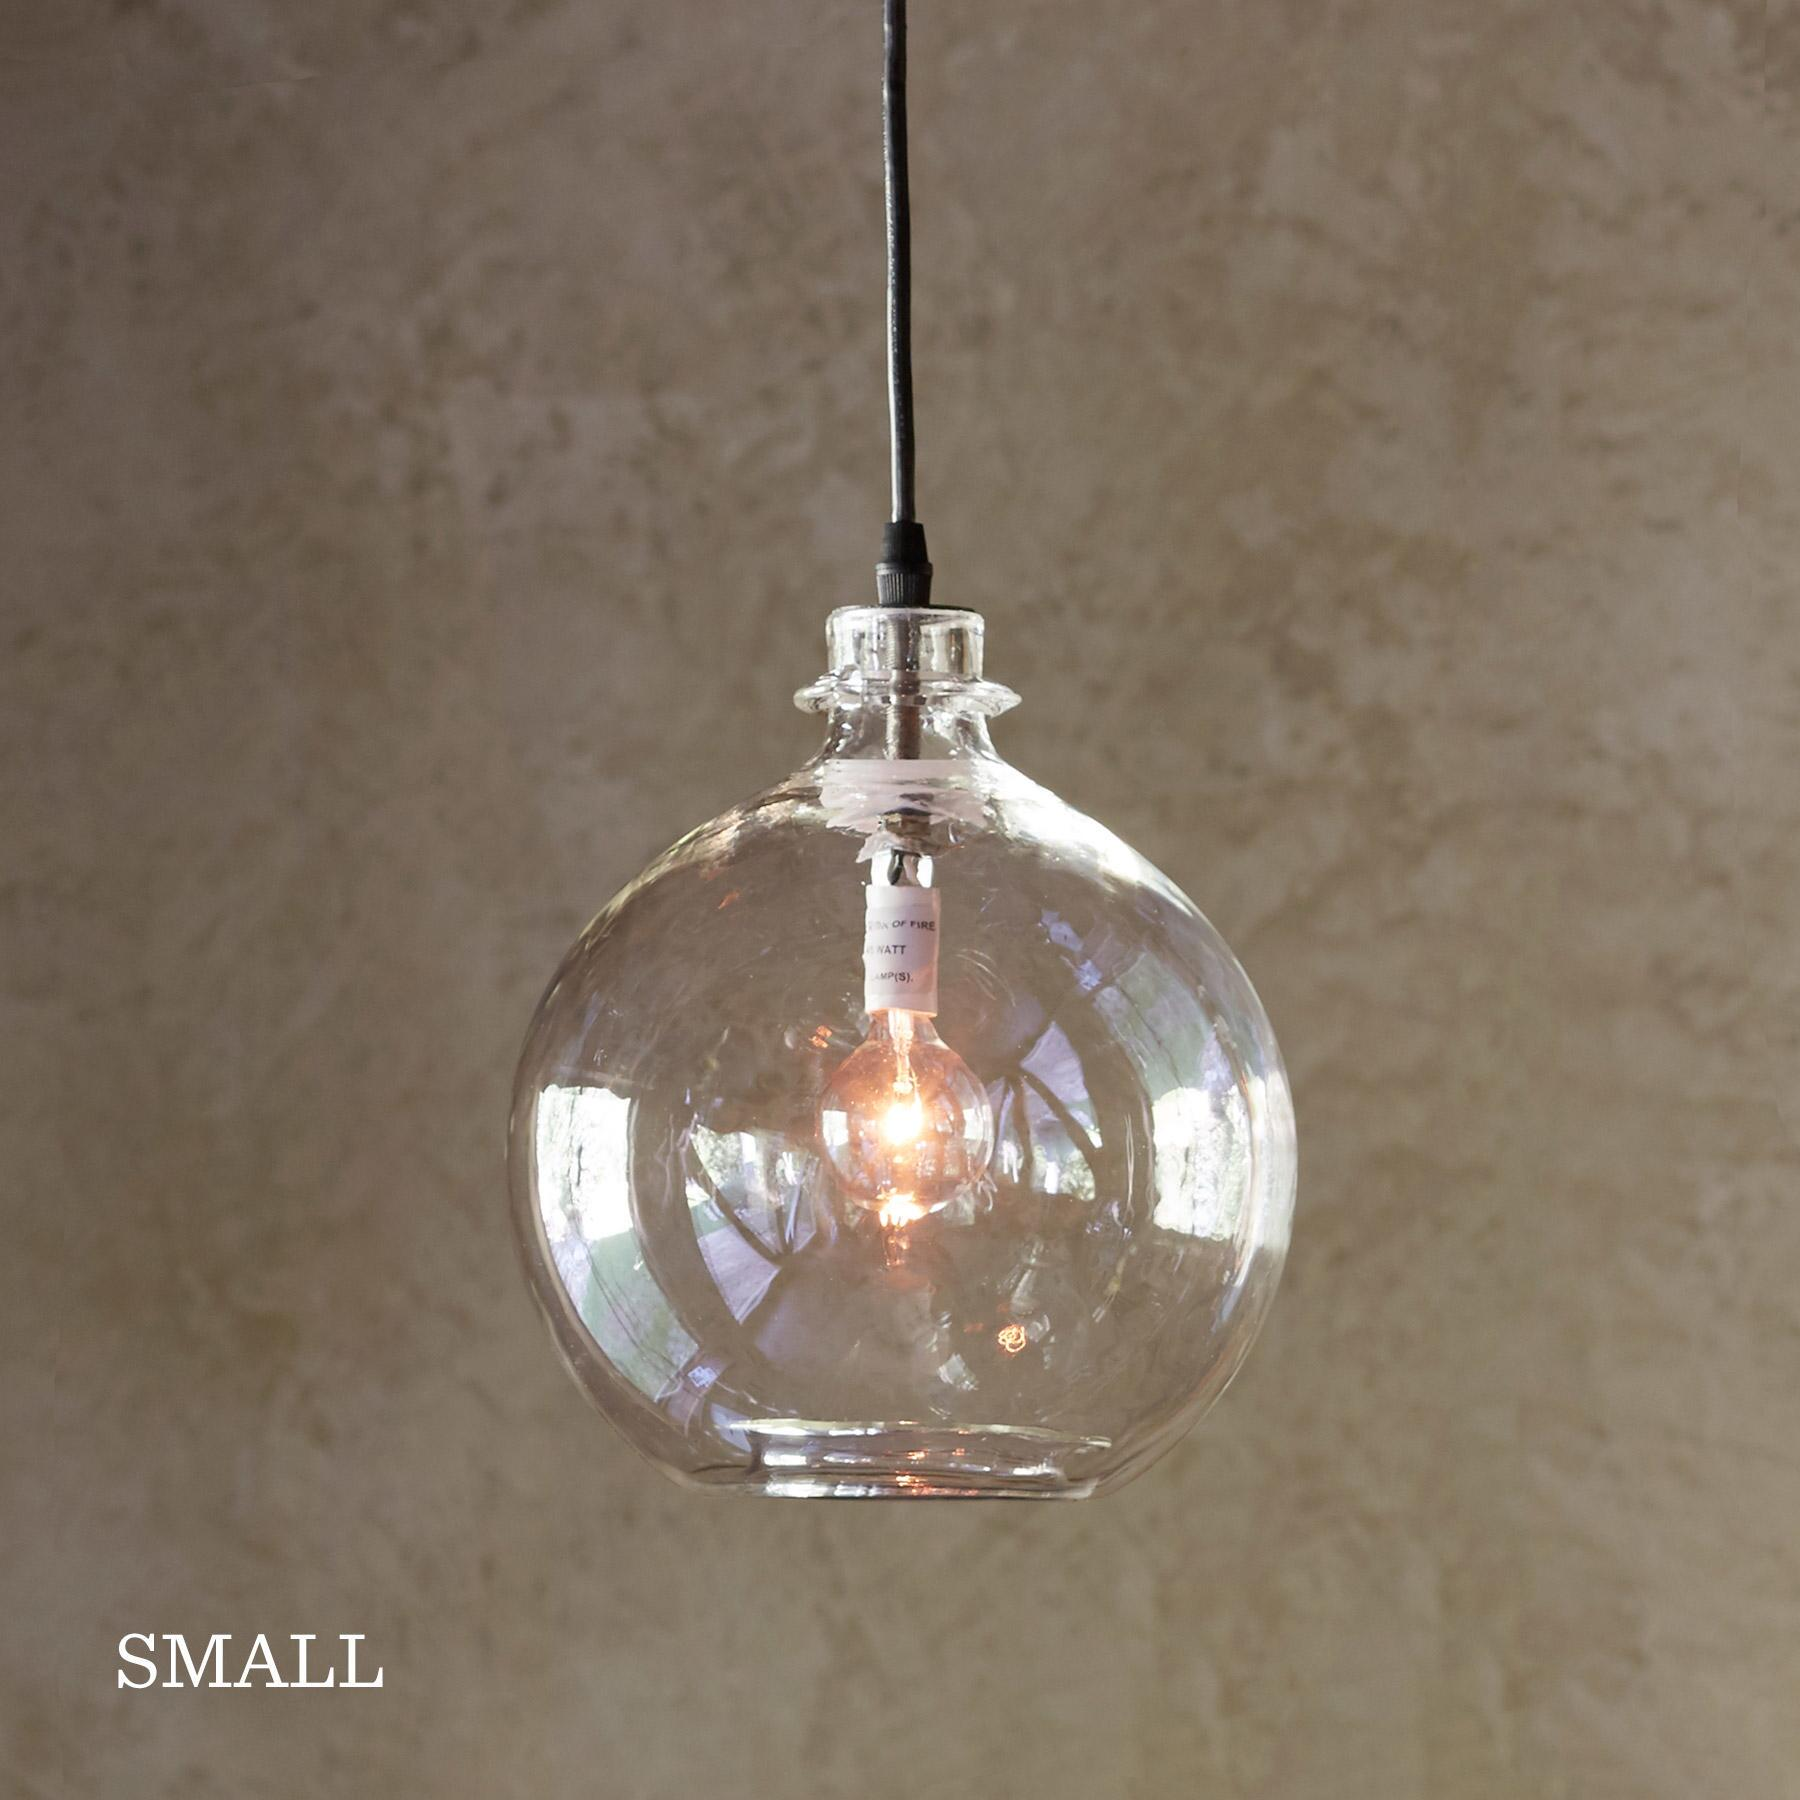 SALON GLASS DEMIJOHN PENDANT LIGHT: View 3